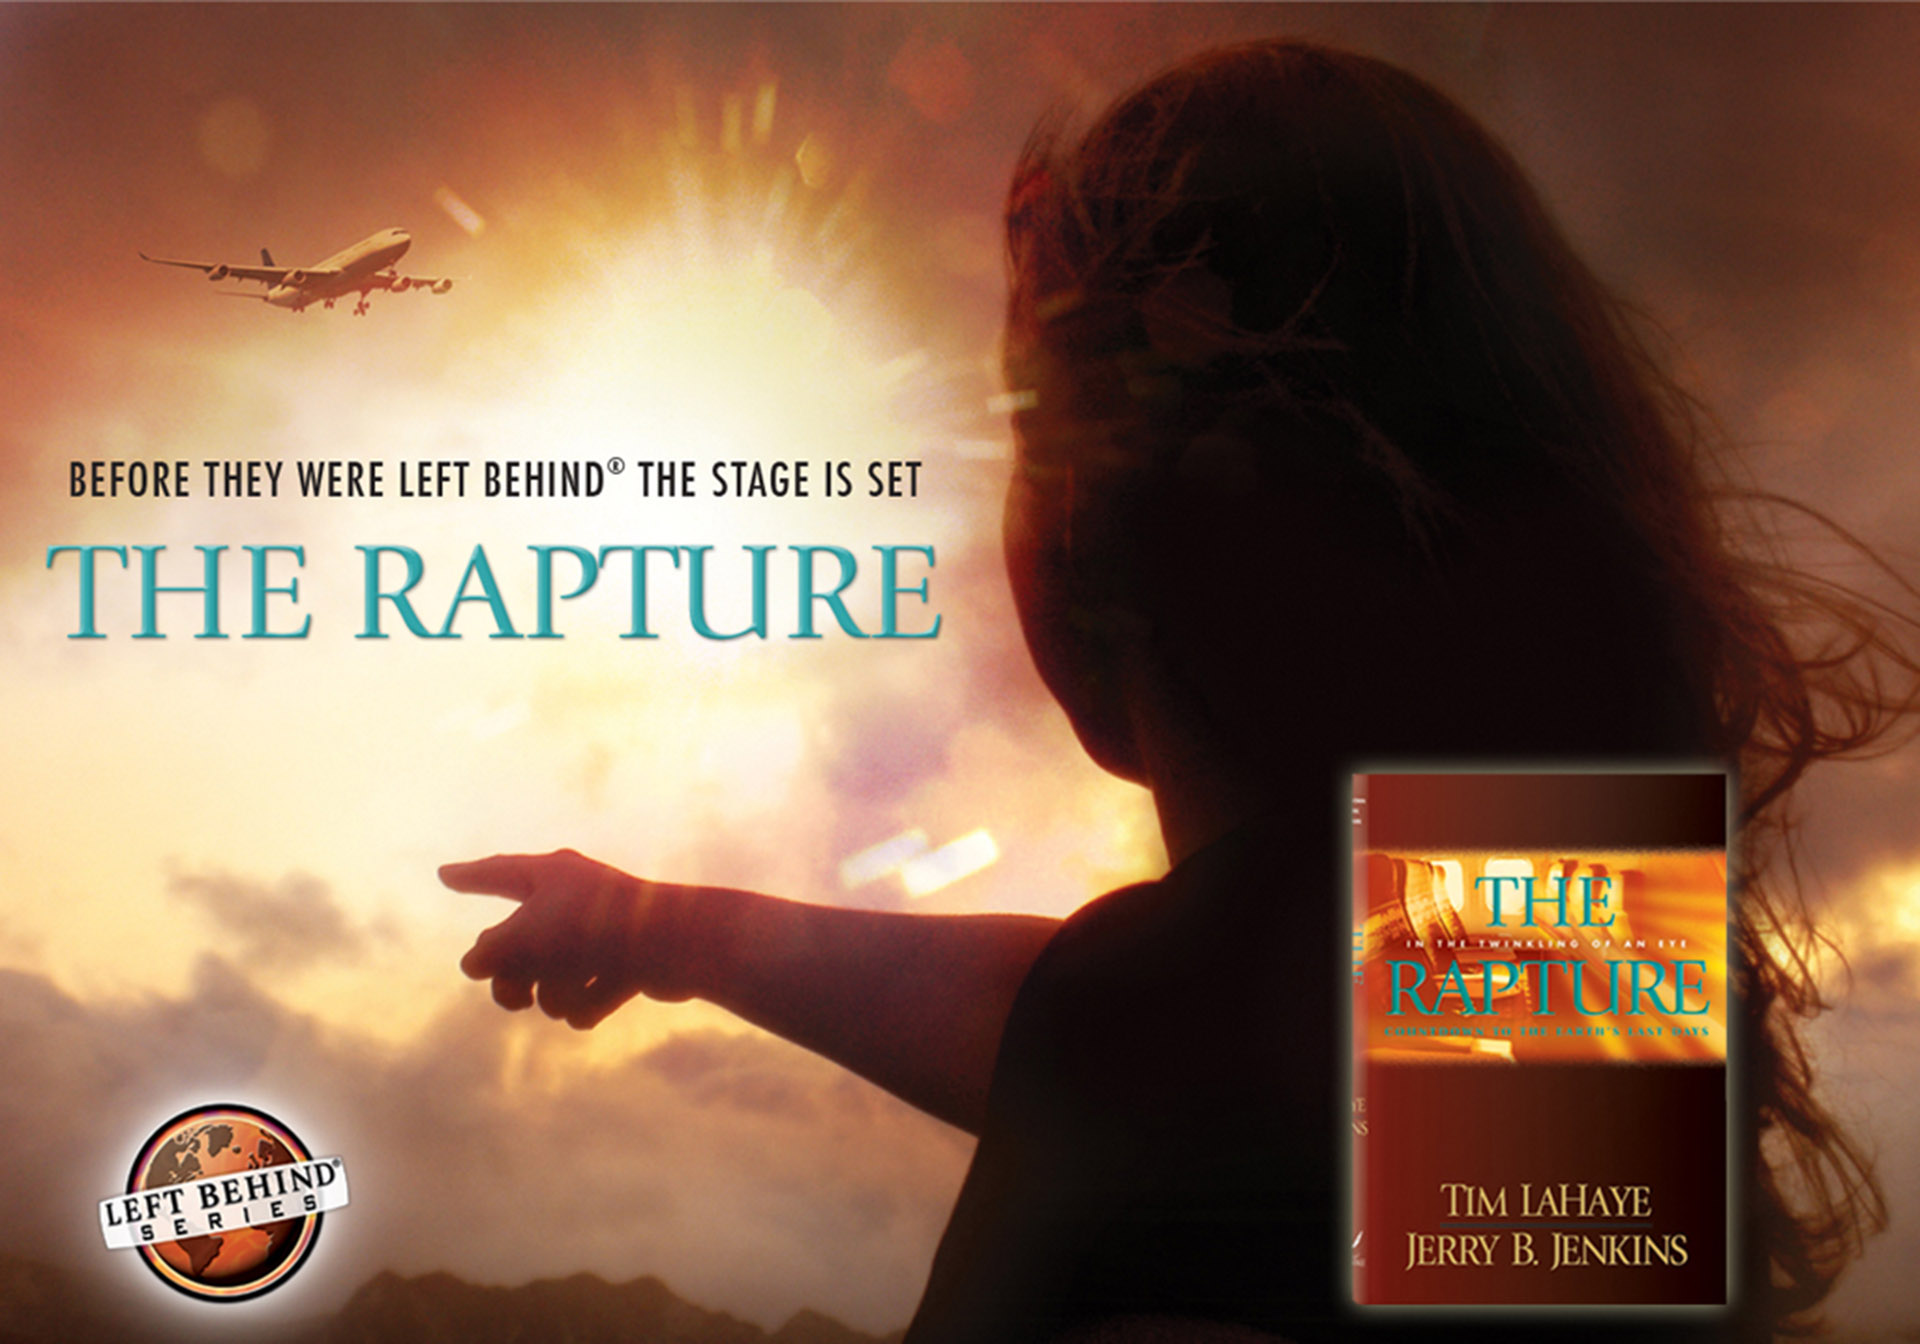 wallpaper_rapture1024_lg